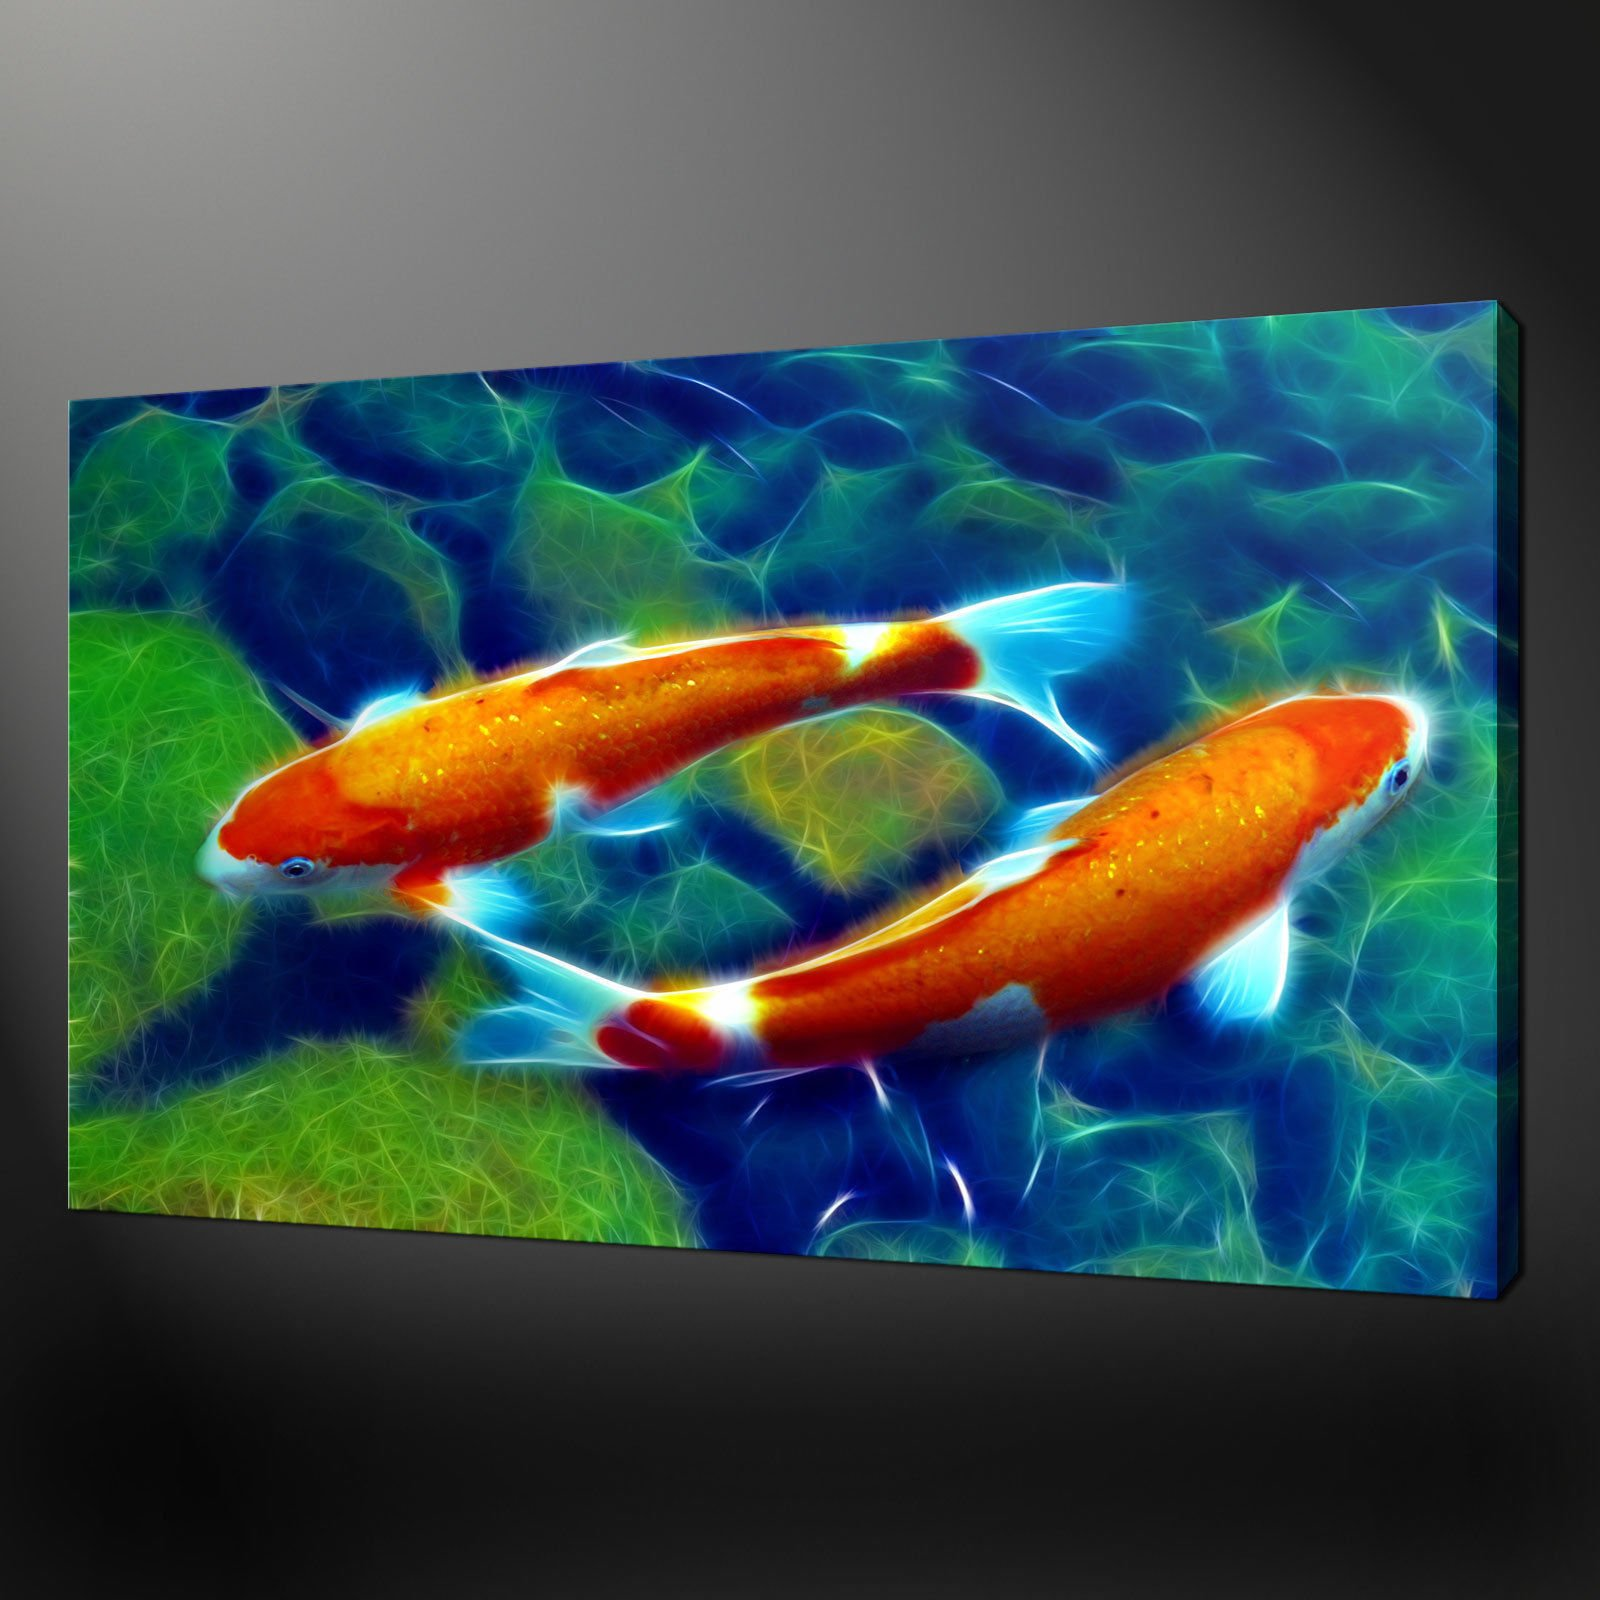 Canvas print pictures high quality handmade free next for Koi prints canvas